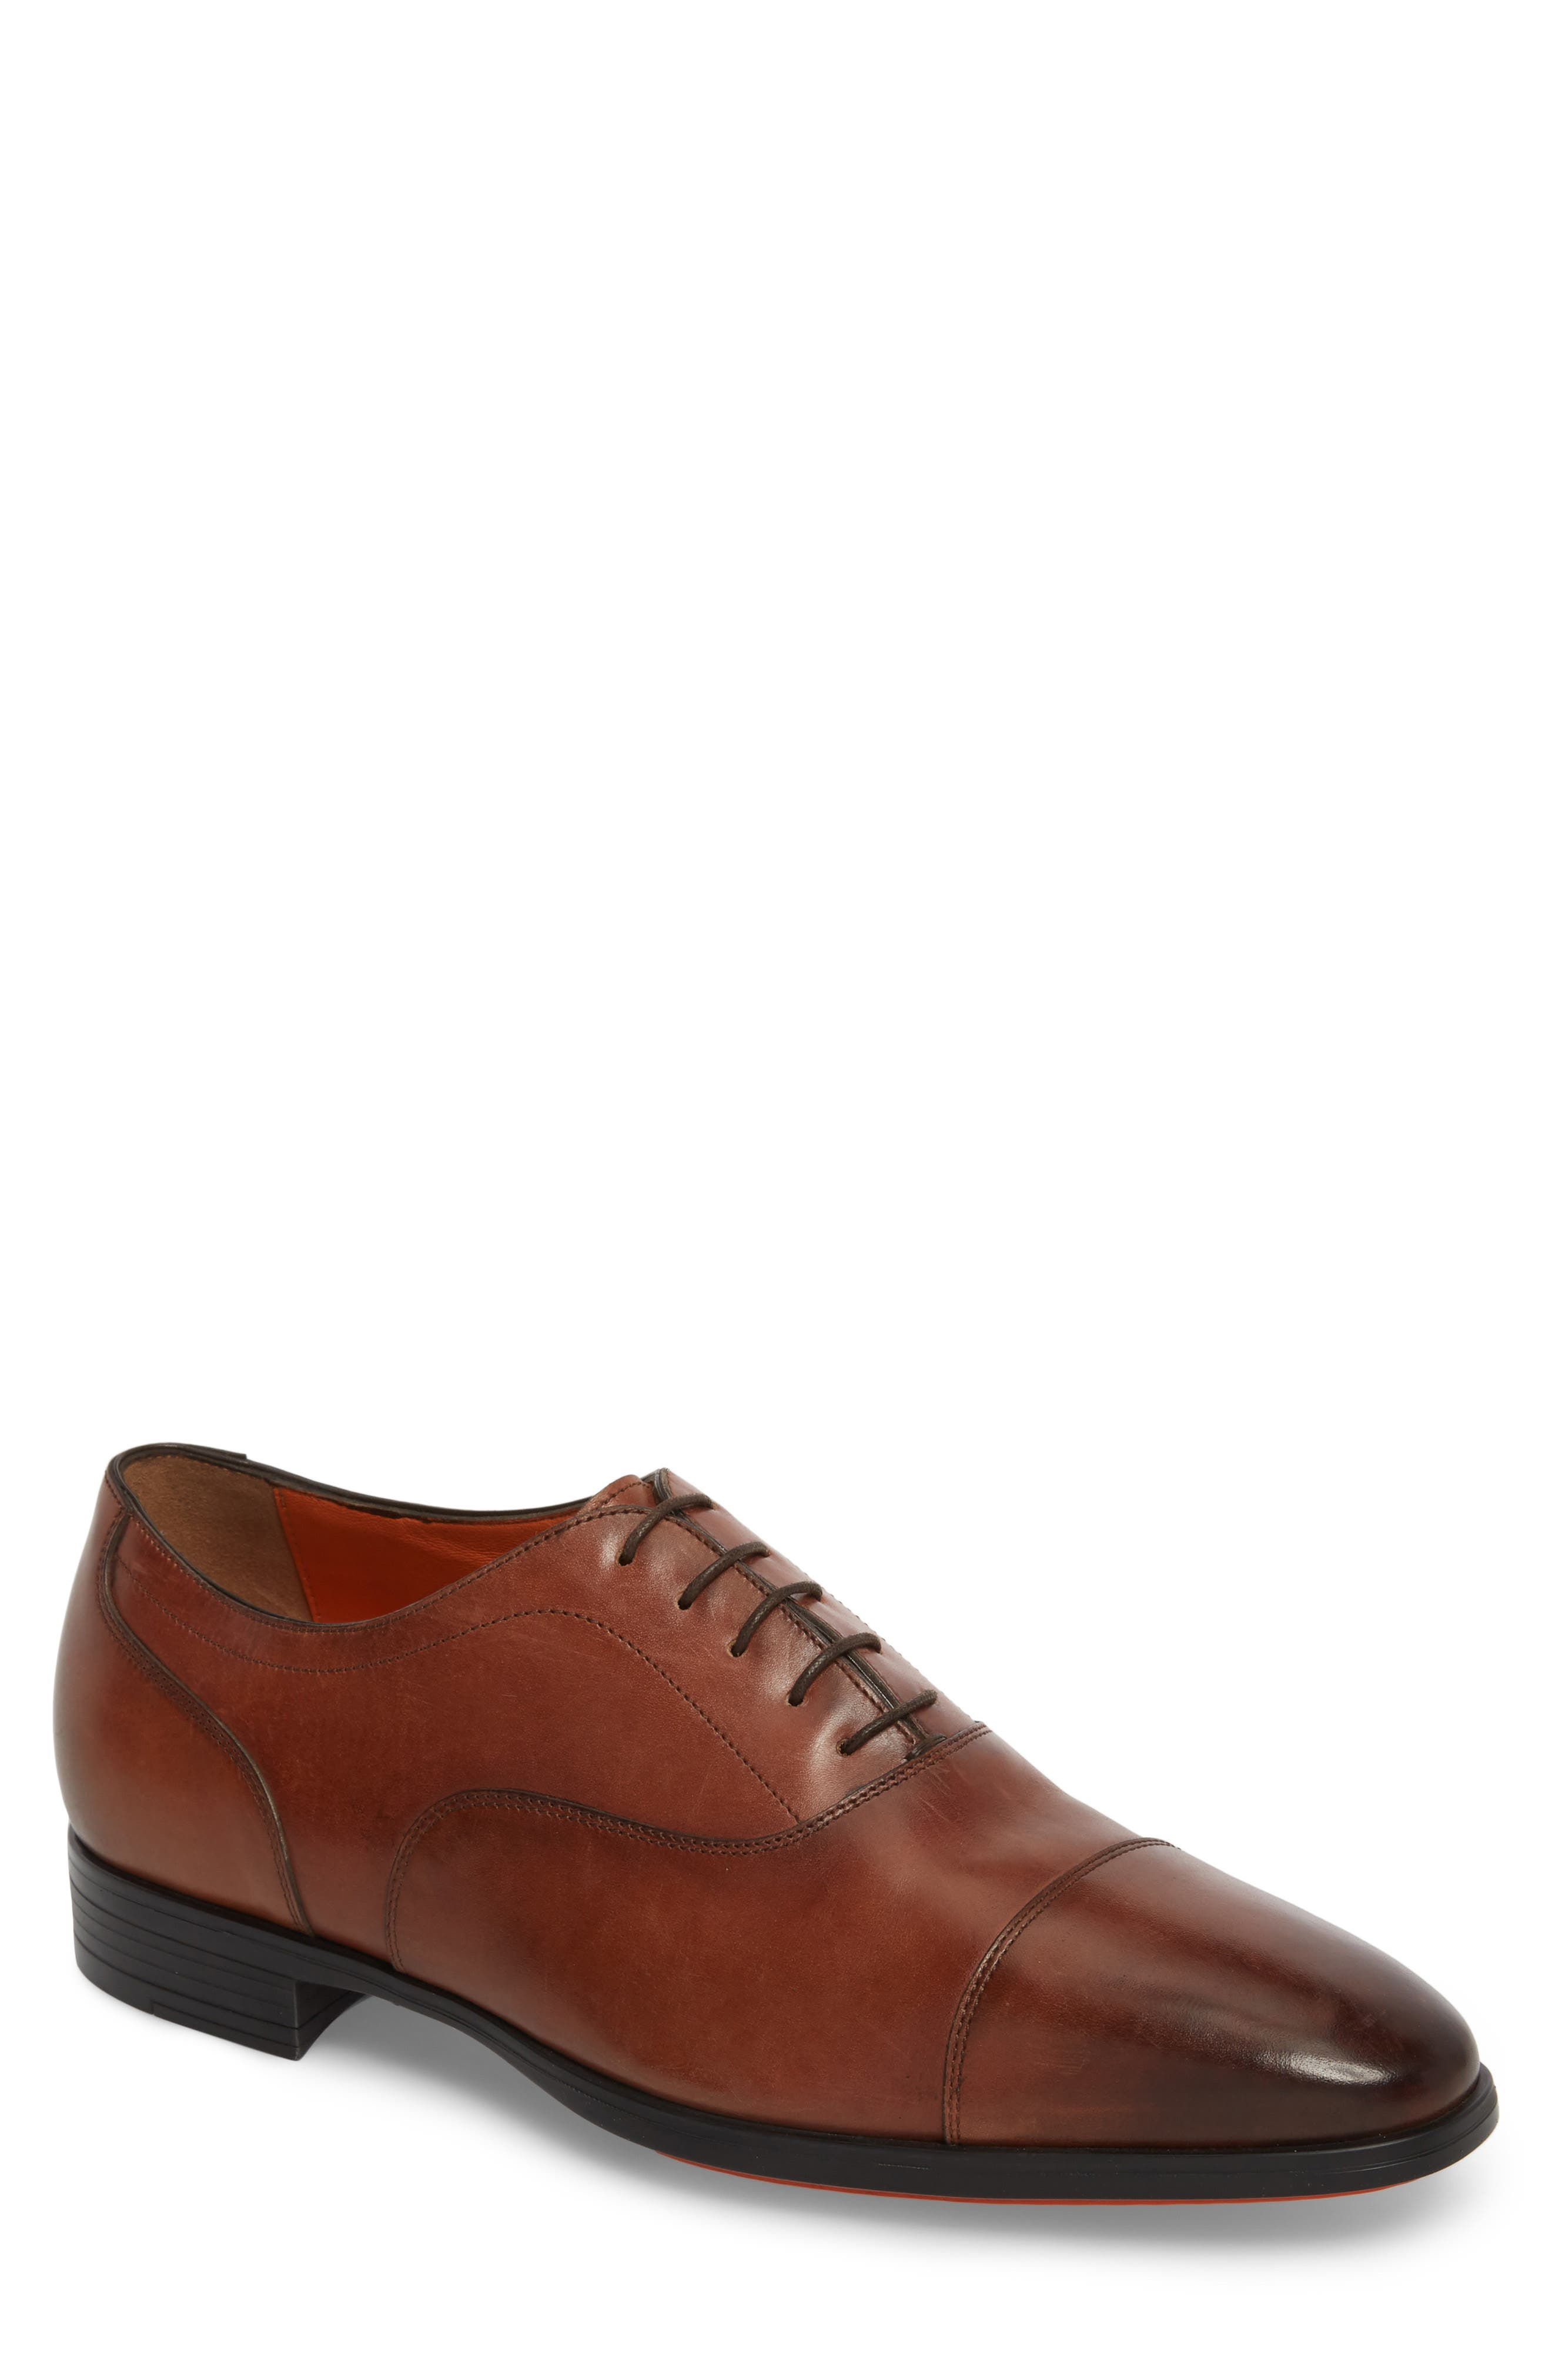 Eamon Cap Toe,                         Main,                         color, Brown